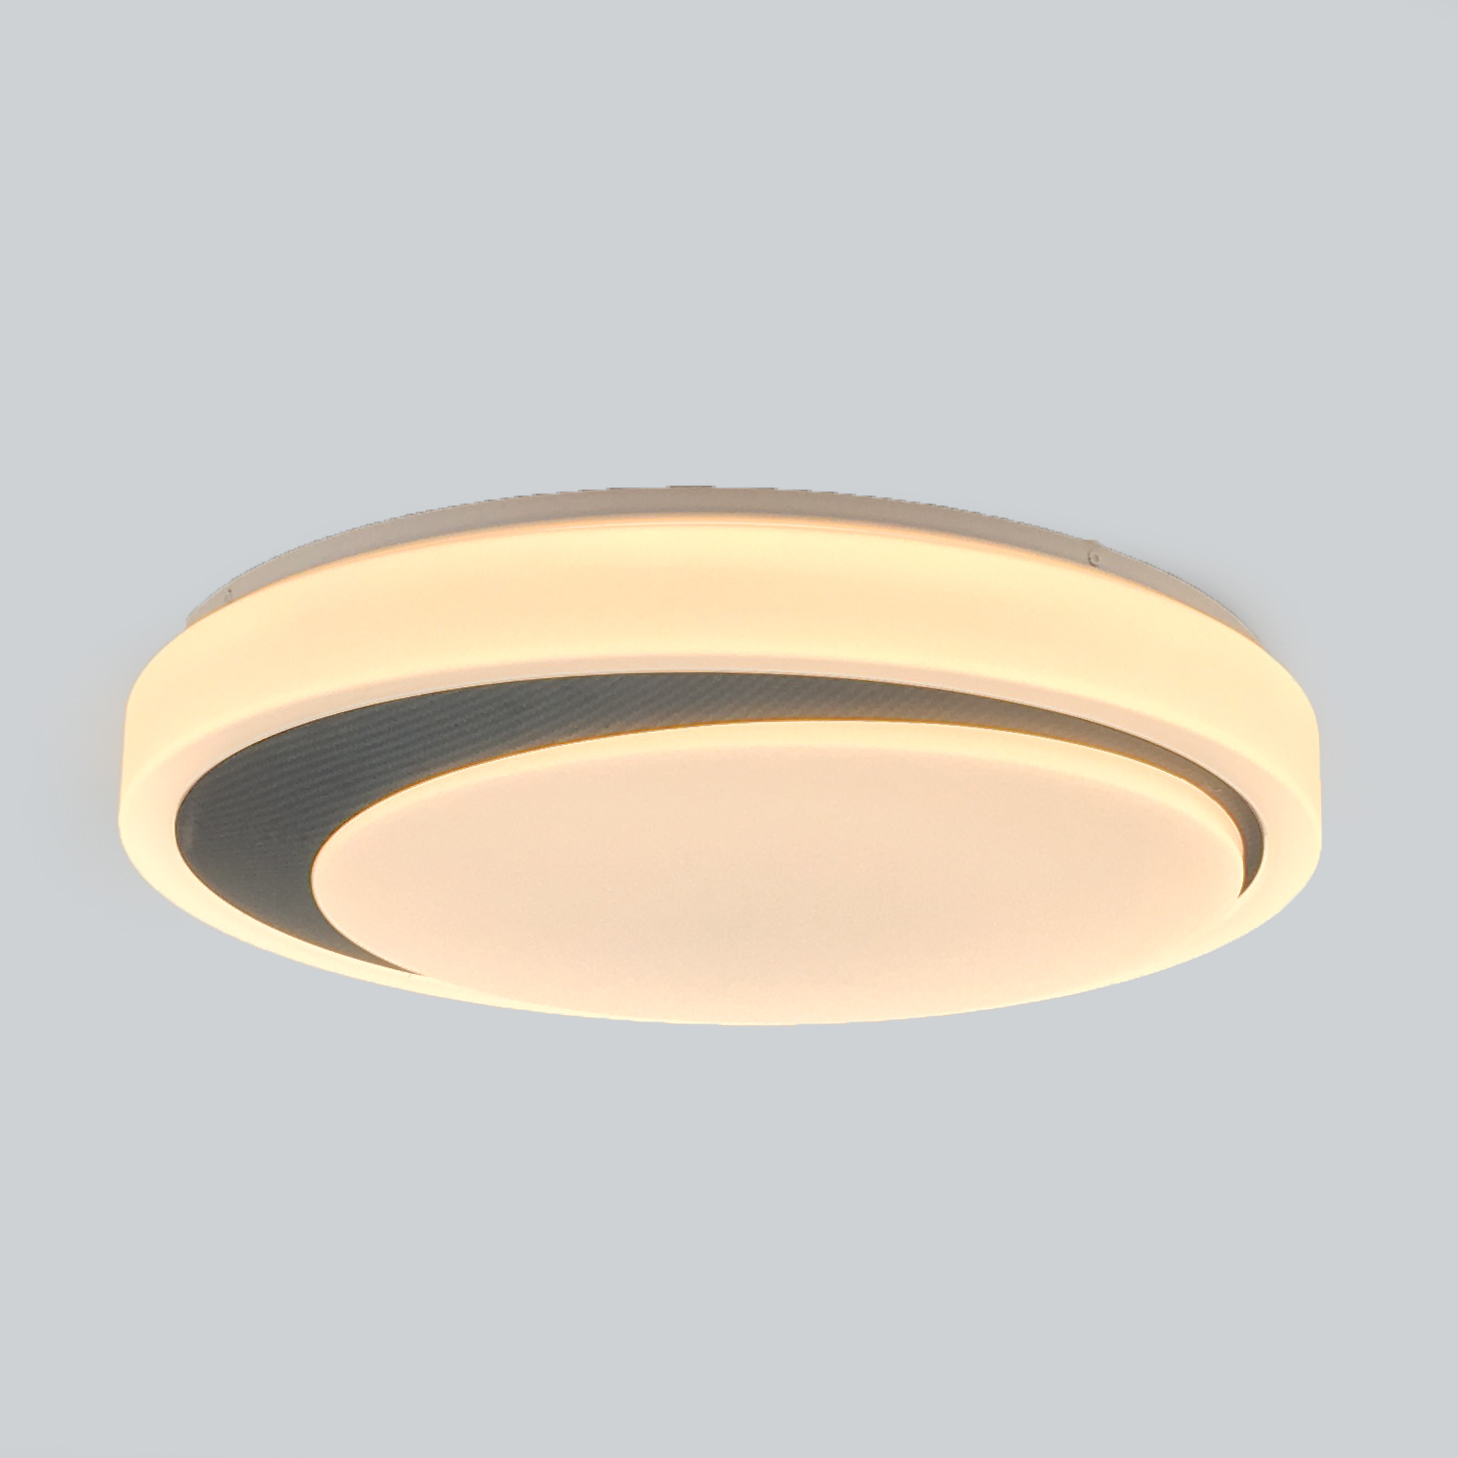 acrylic round SMD surface mount led ceiling light